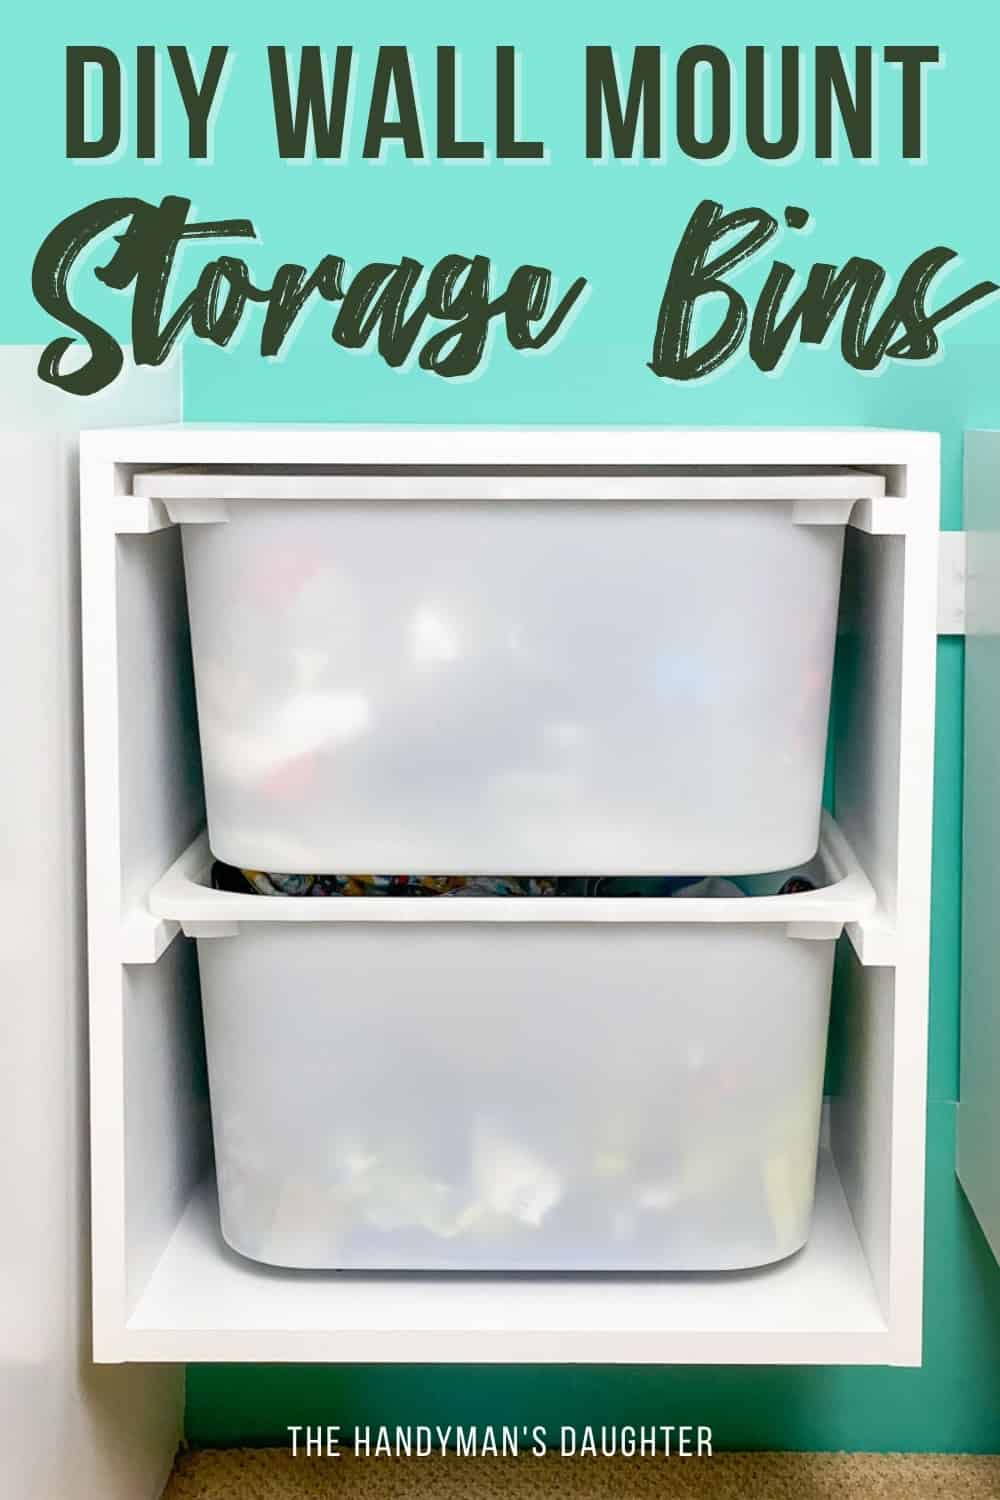 DIY wall mount storage bins front view with text overlay